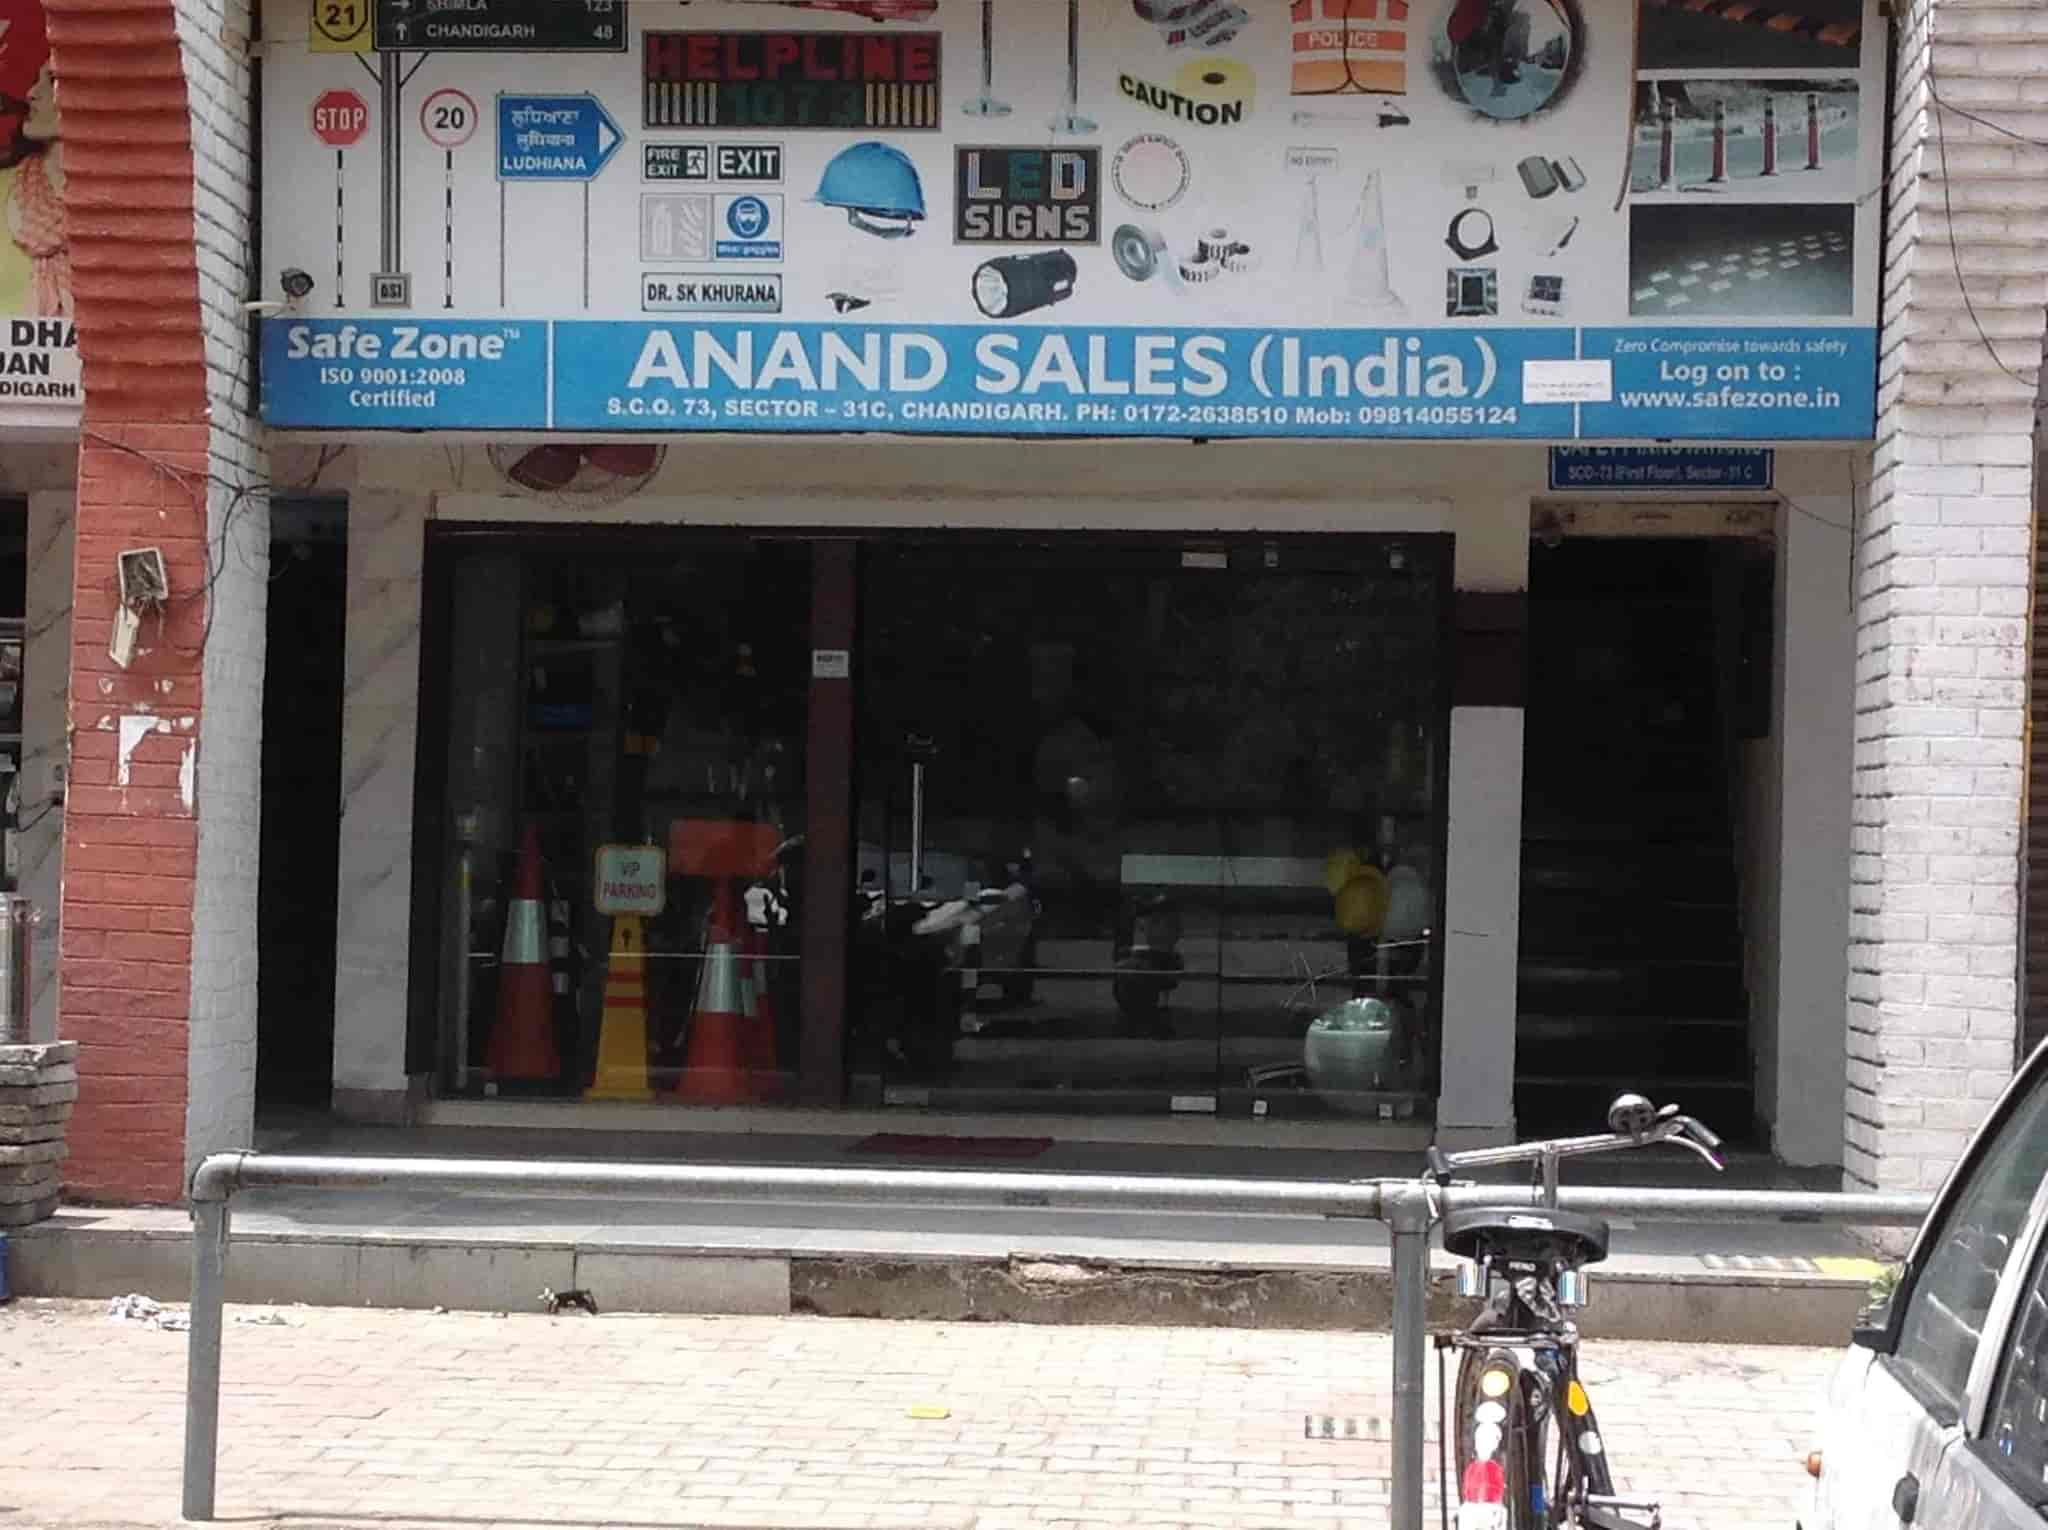 Anand Sales INDIA, Chandigarh Sector 31c - Safety Equipment Dealers